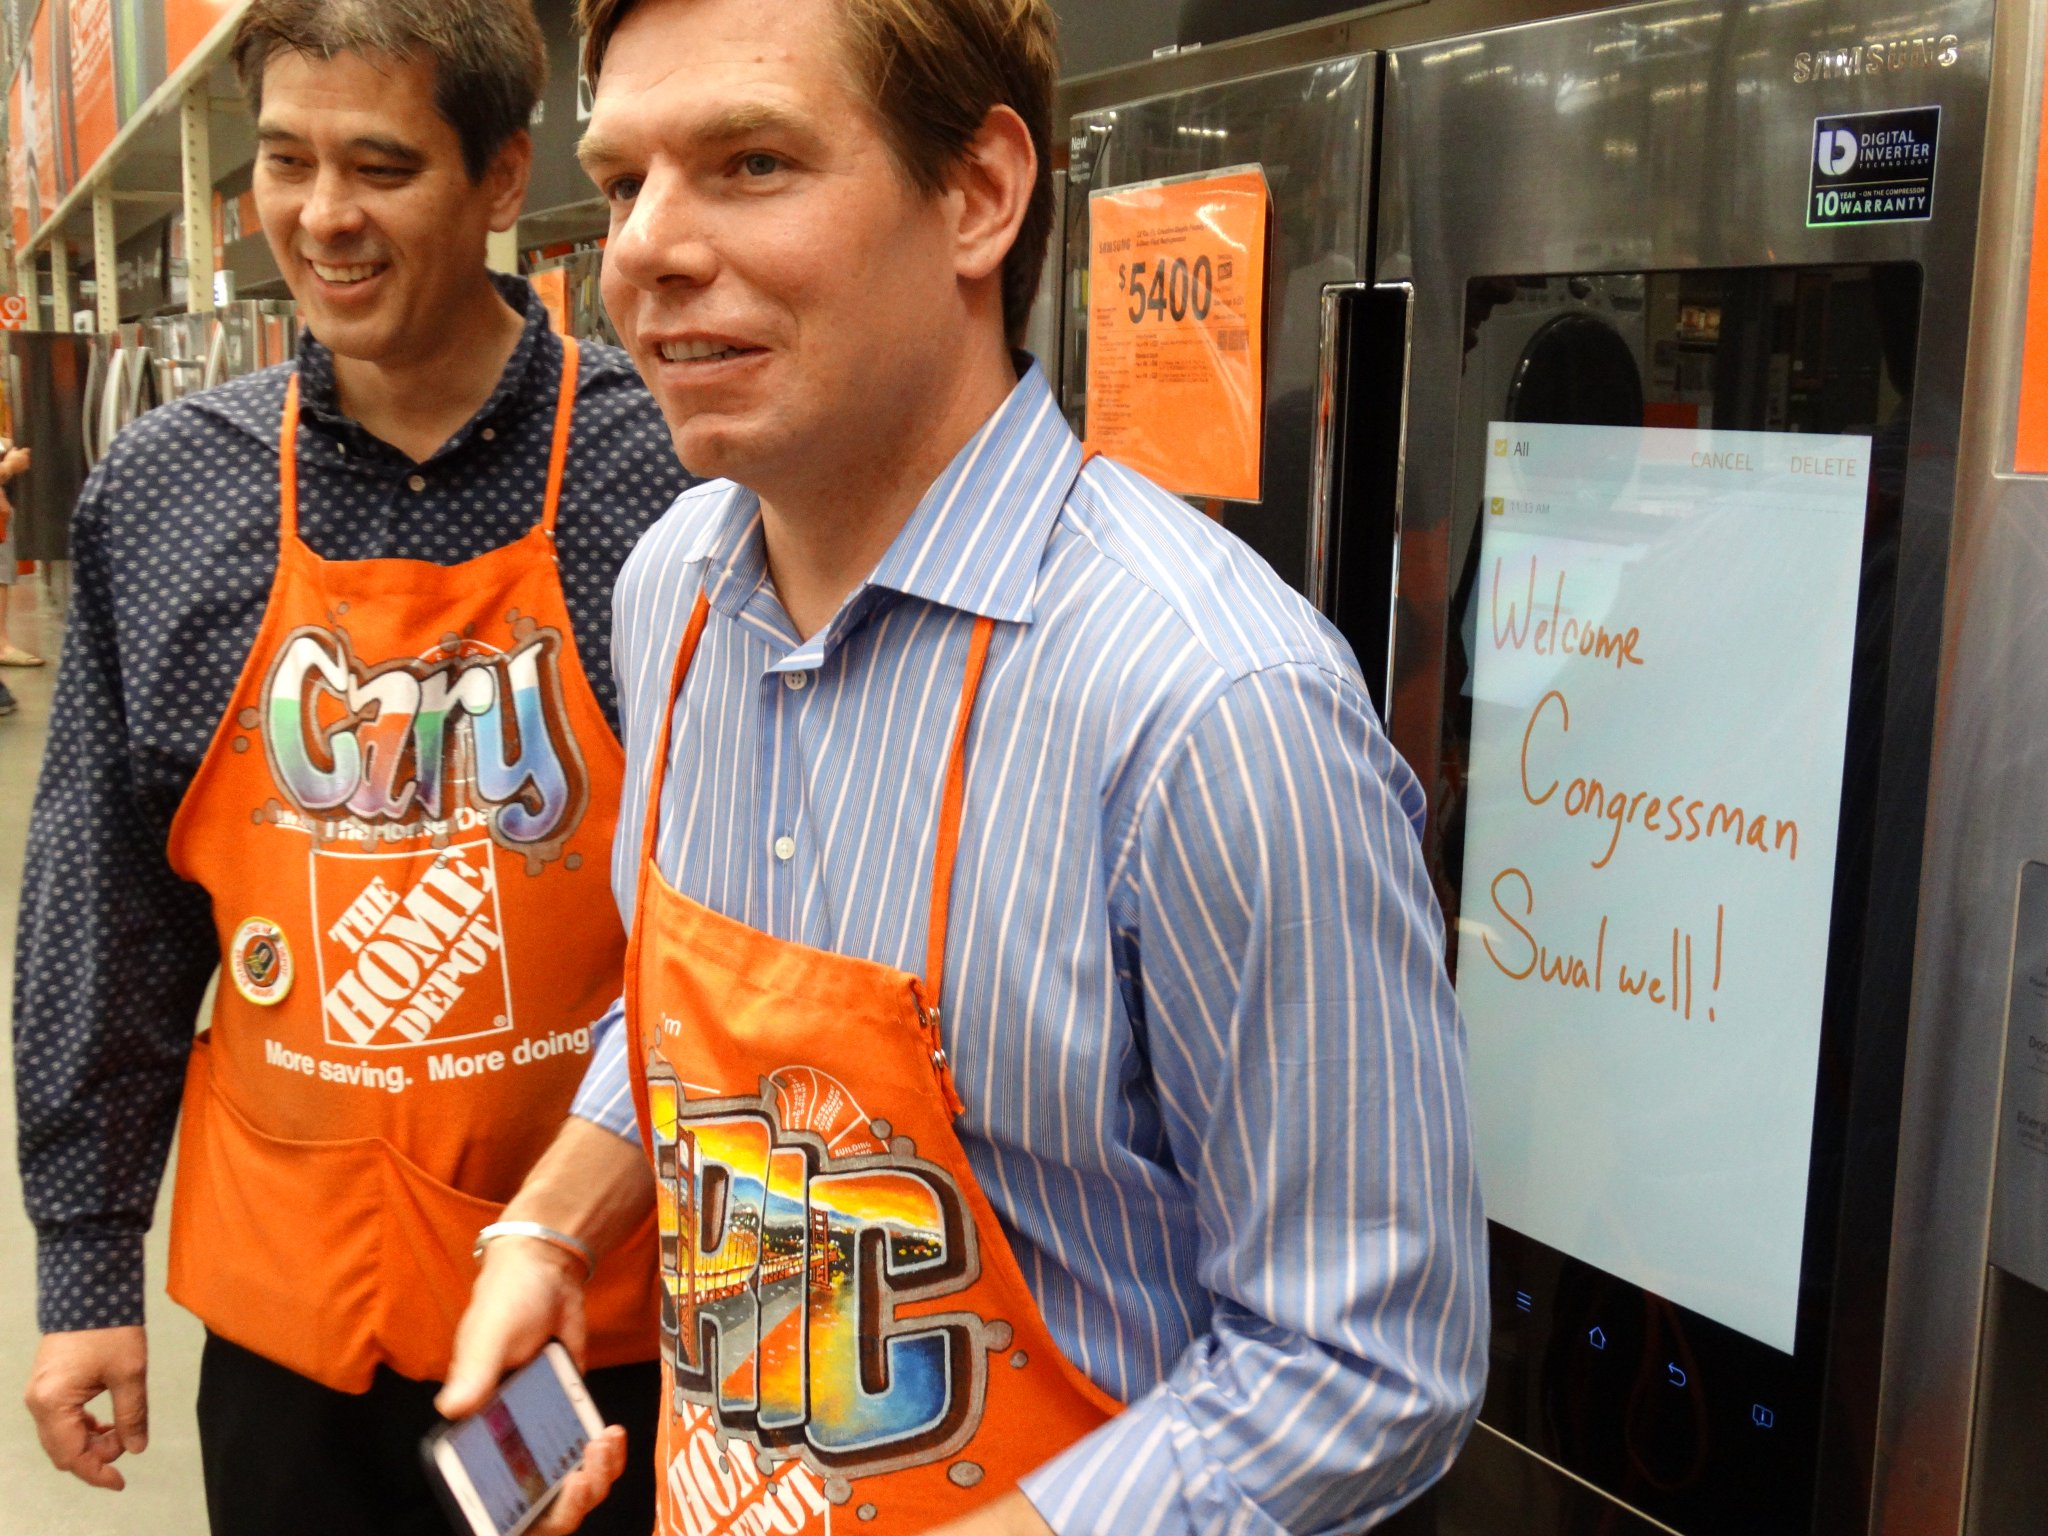 Thanks to the crew at Pleasanton's @HomeDepot store 629 for a warm welcome during my #InYourShoes visit last Friday! https://t.co/2OnVJswpTC